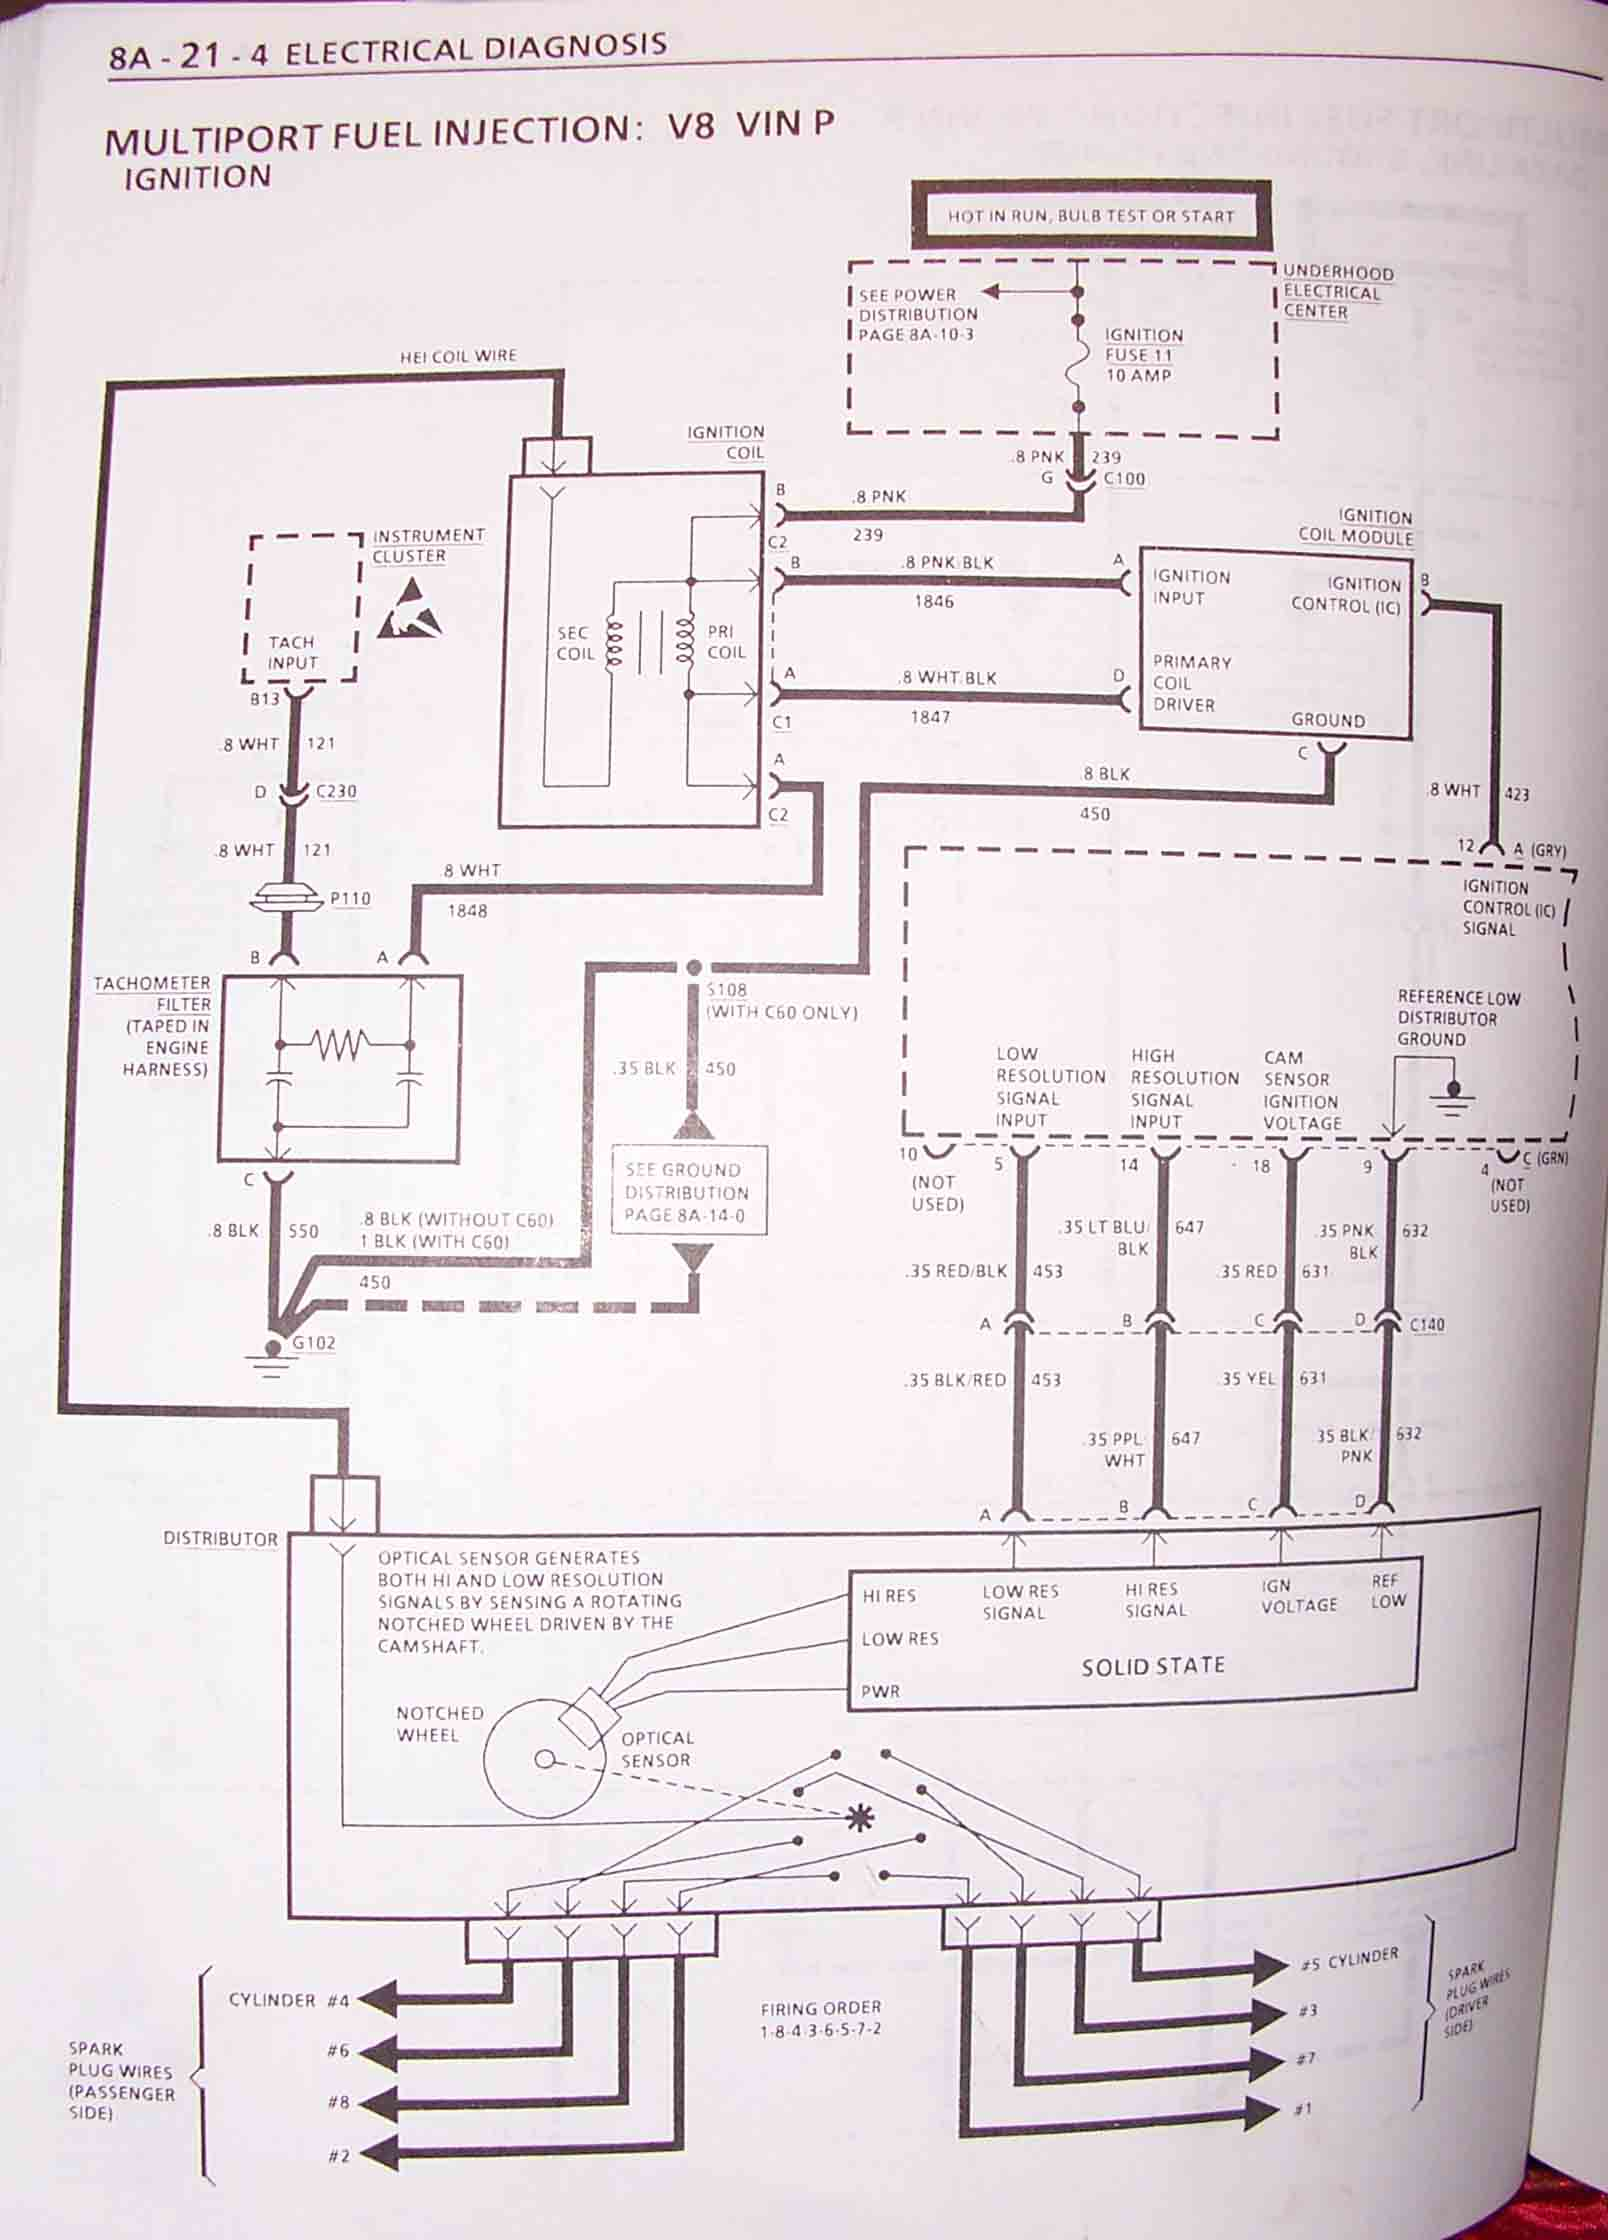 2014 Camaro Fuel Pump Wiring Diagrams 1998 Diagram 1993 Lt1 Harness Information Rh Lt1swap Com 97